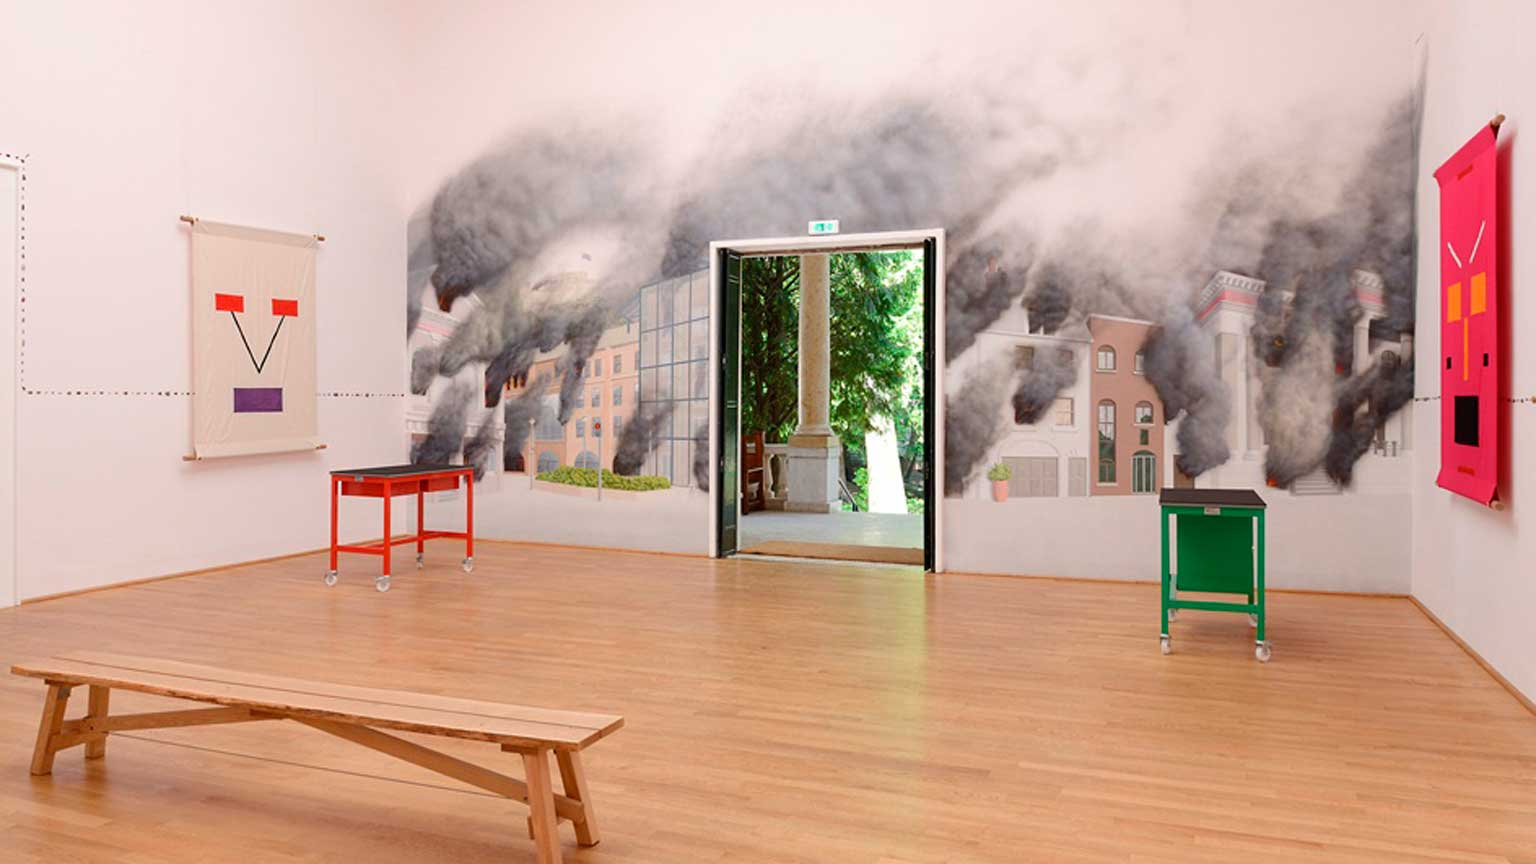 A Good Day for Cyclists, Jeremy Deller, 2013